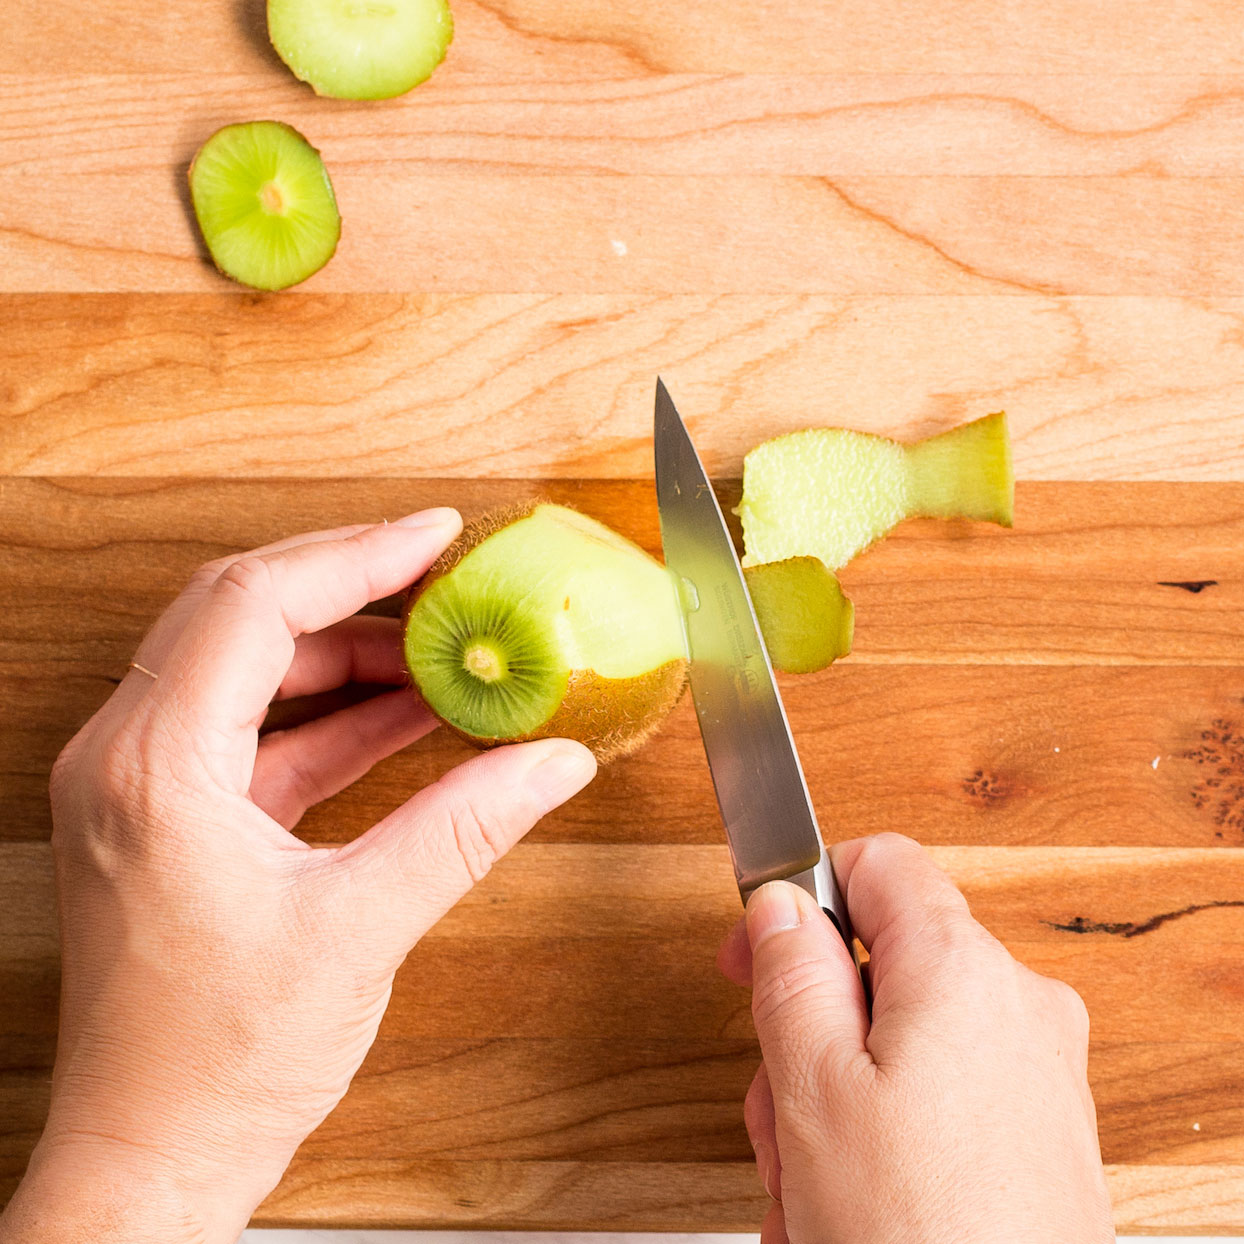 peeling kiwi with a paring knife